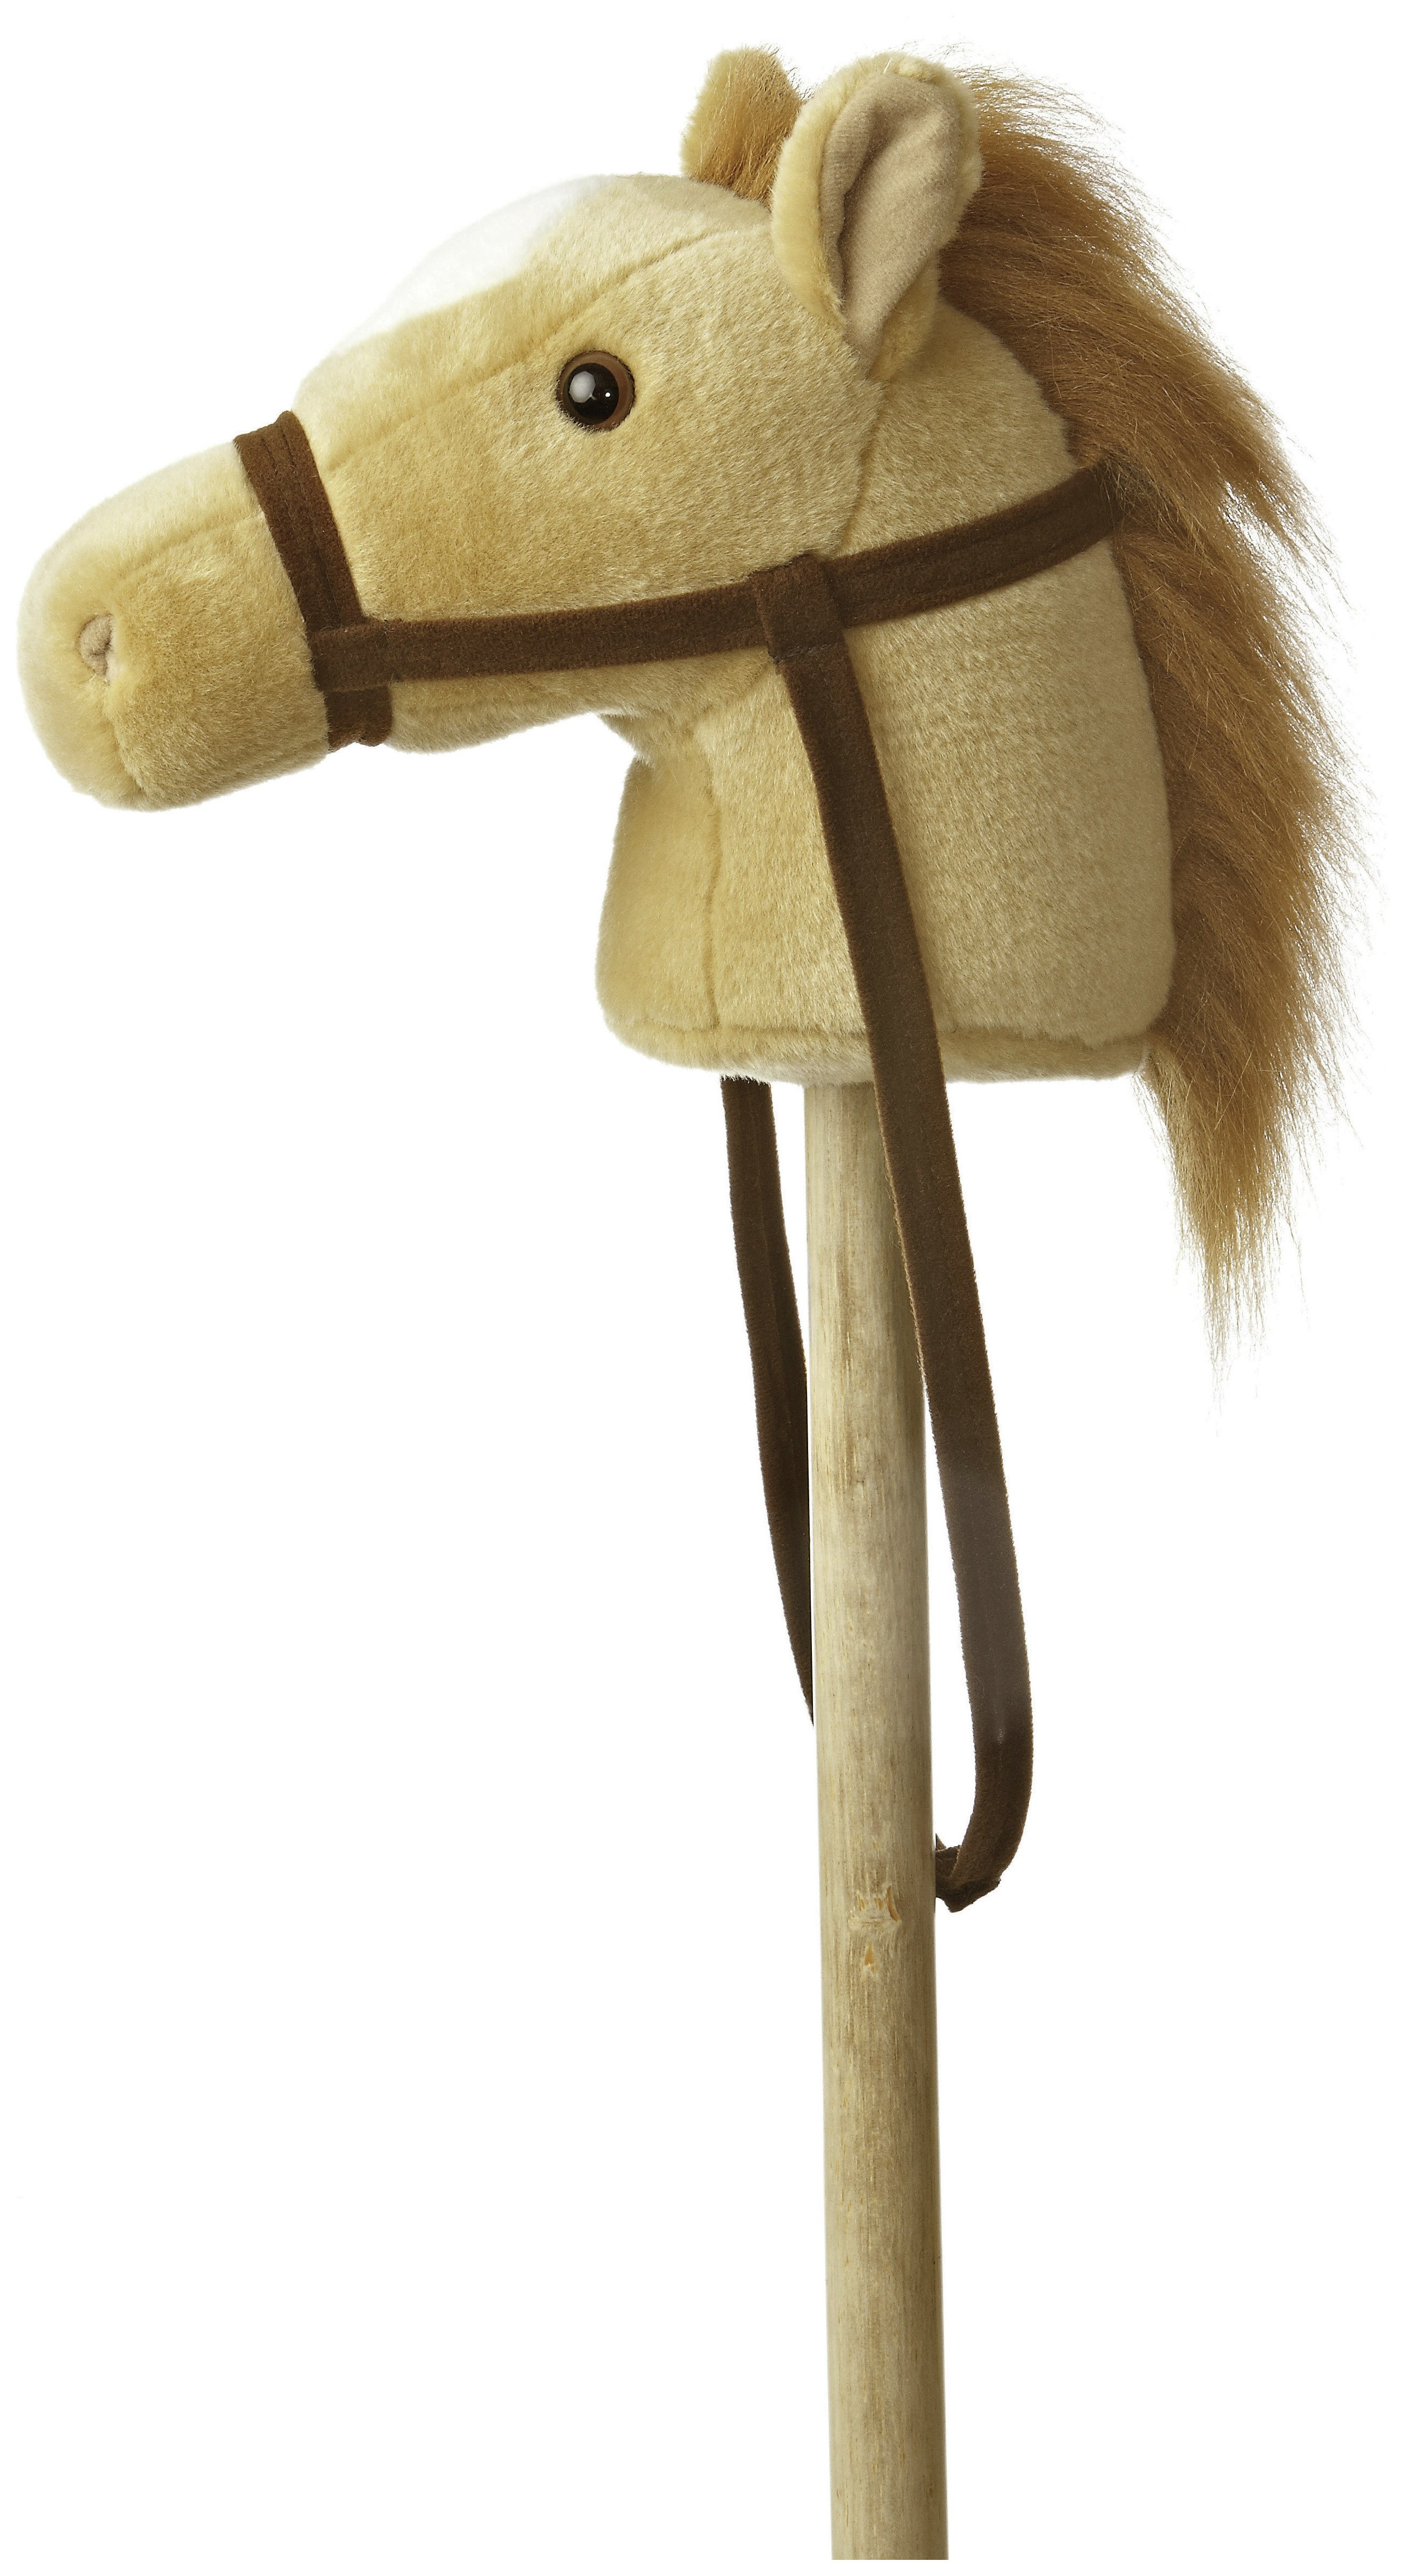 Image of Giddy Up Pony - with Sounds 37 inch - Beige